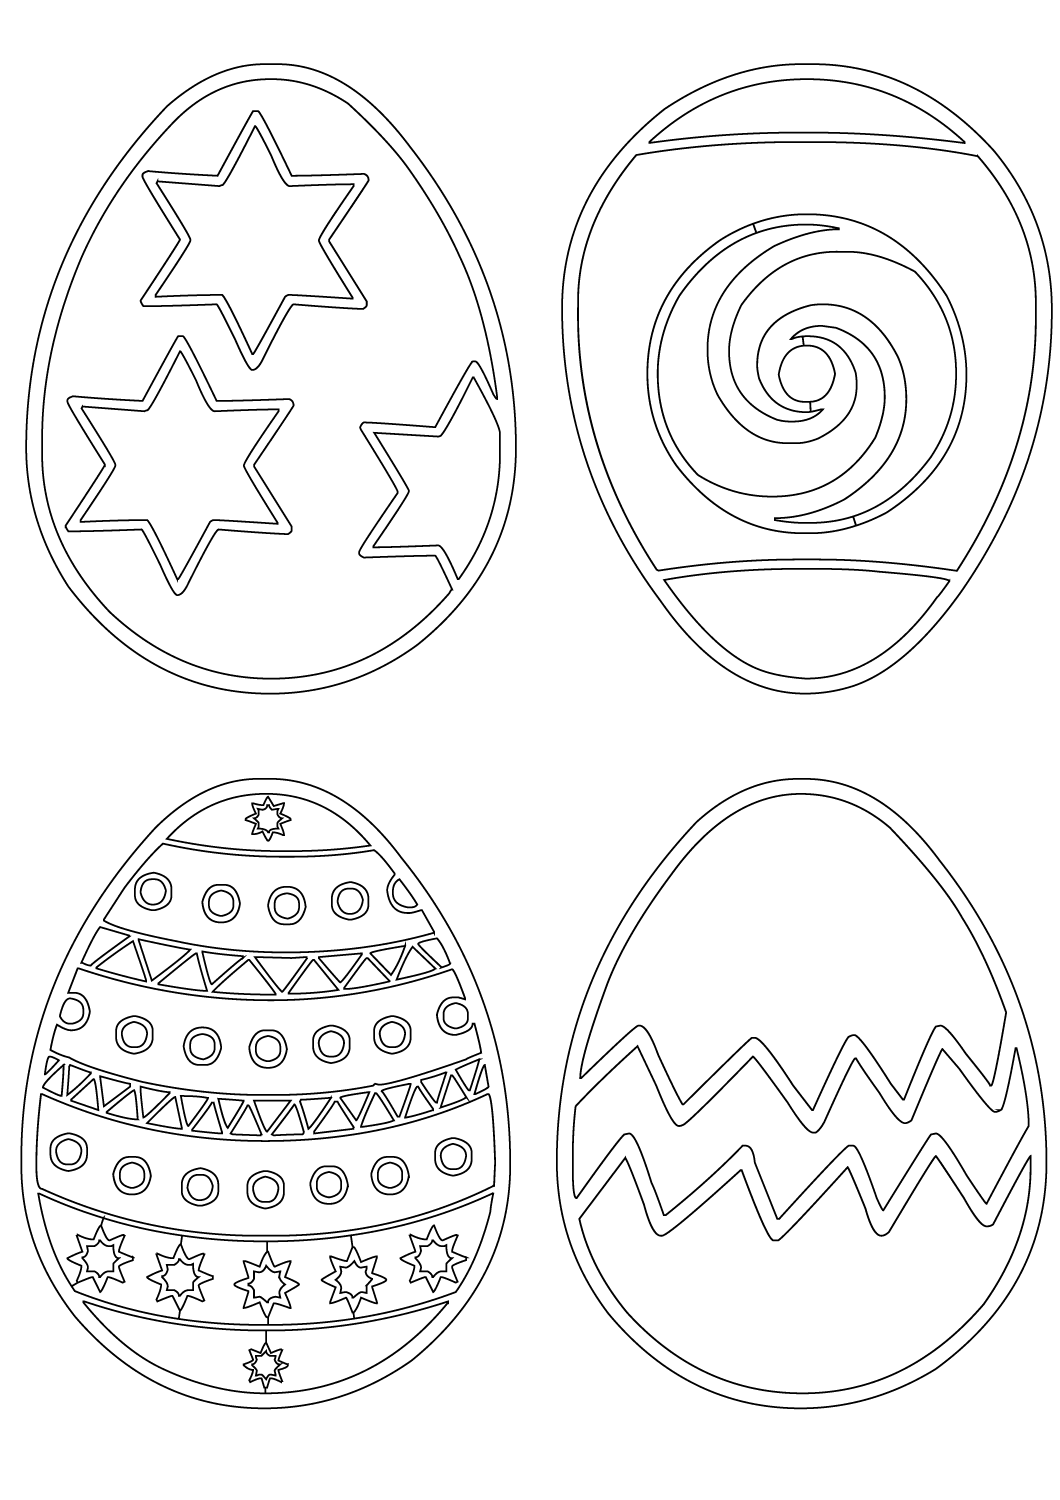 Patterns on Easter Eggs